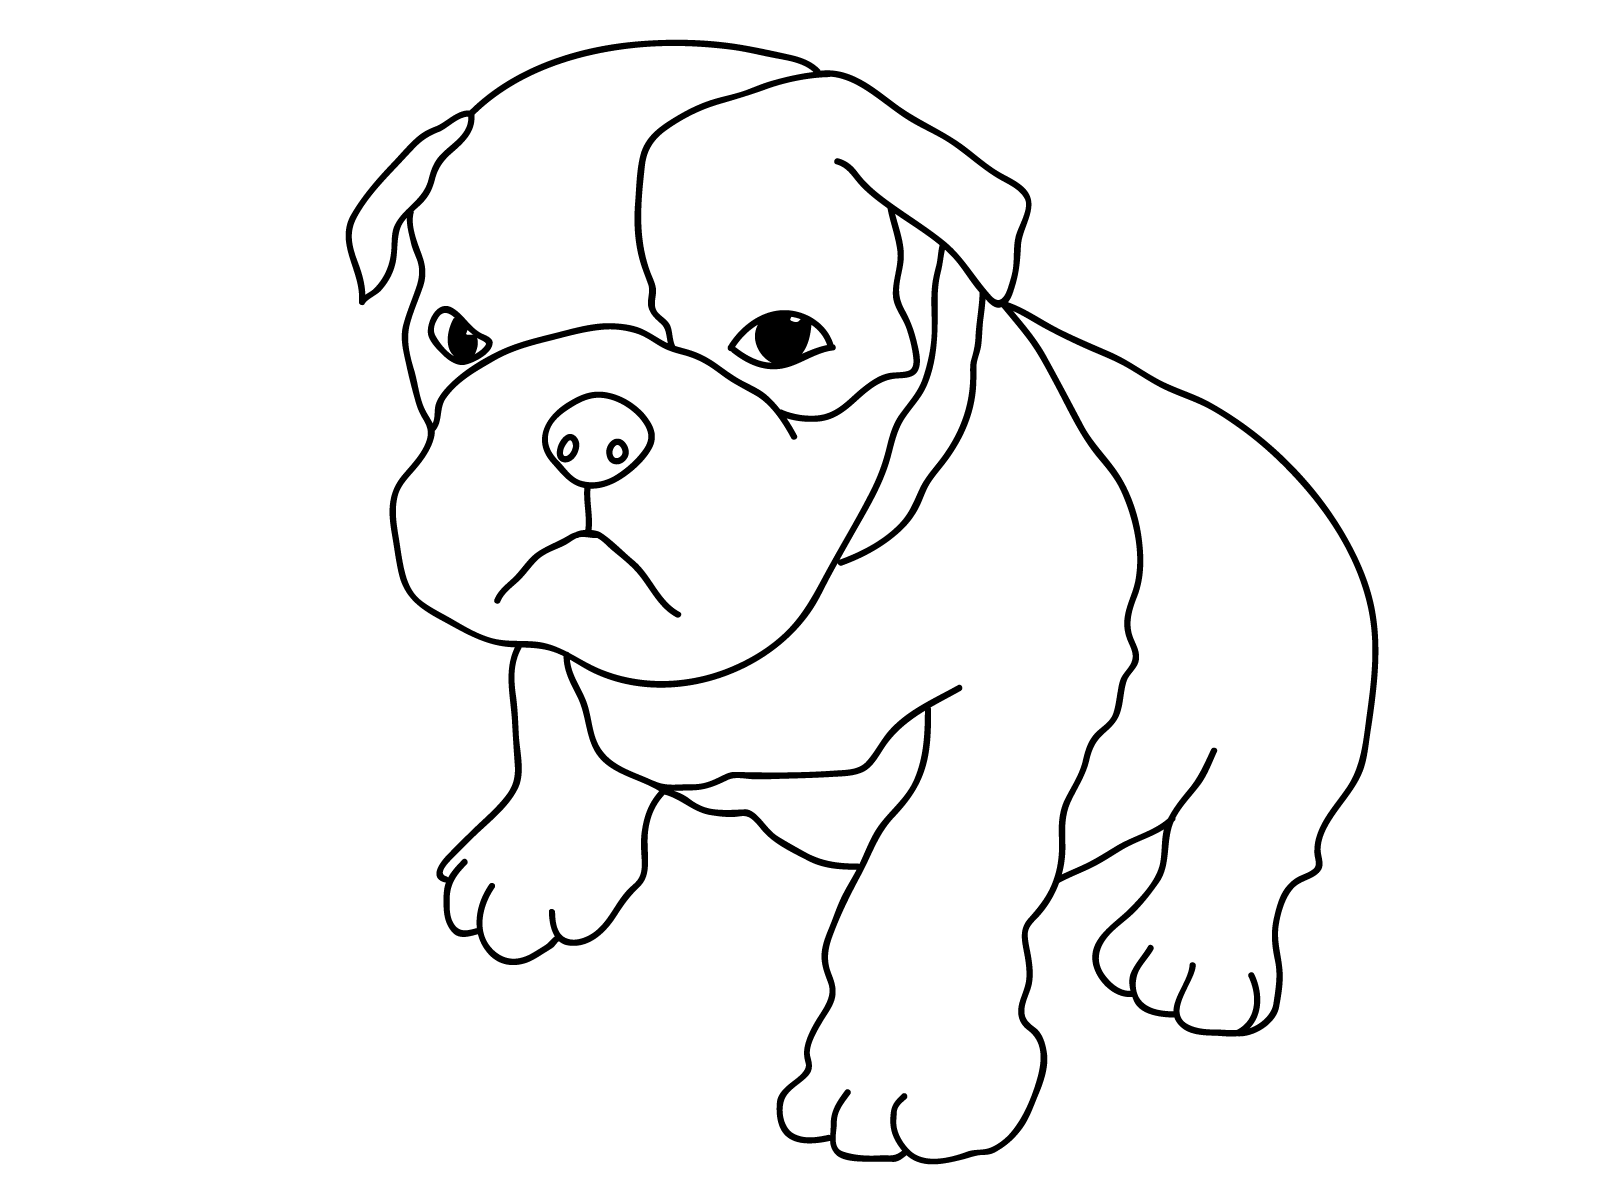 puppy coloring pages com - photo#14